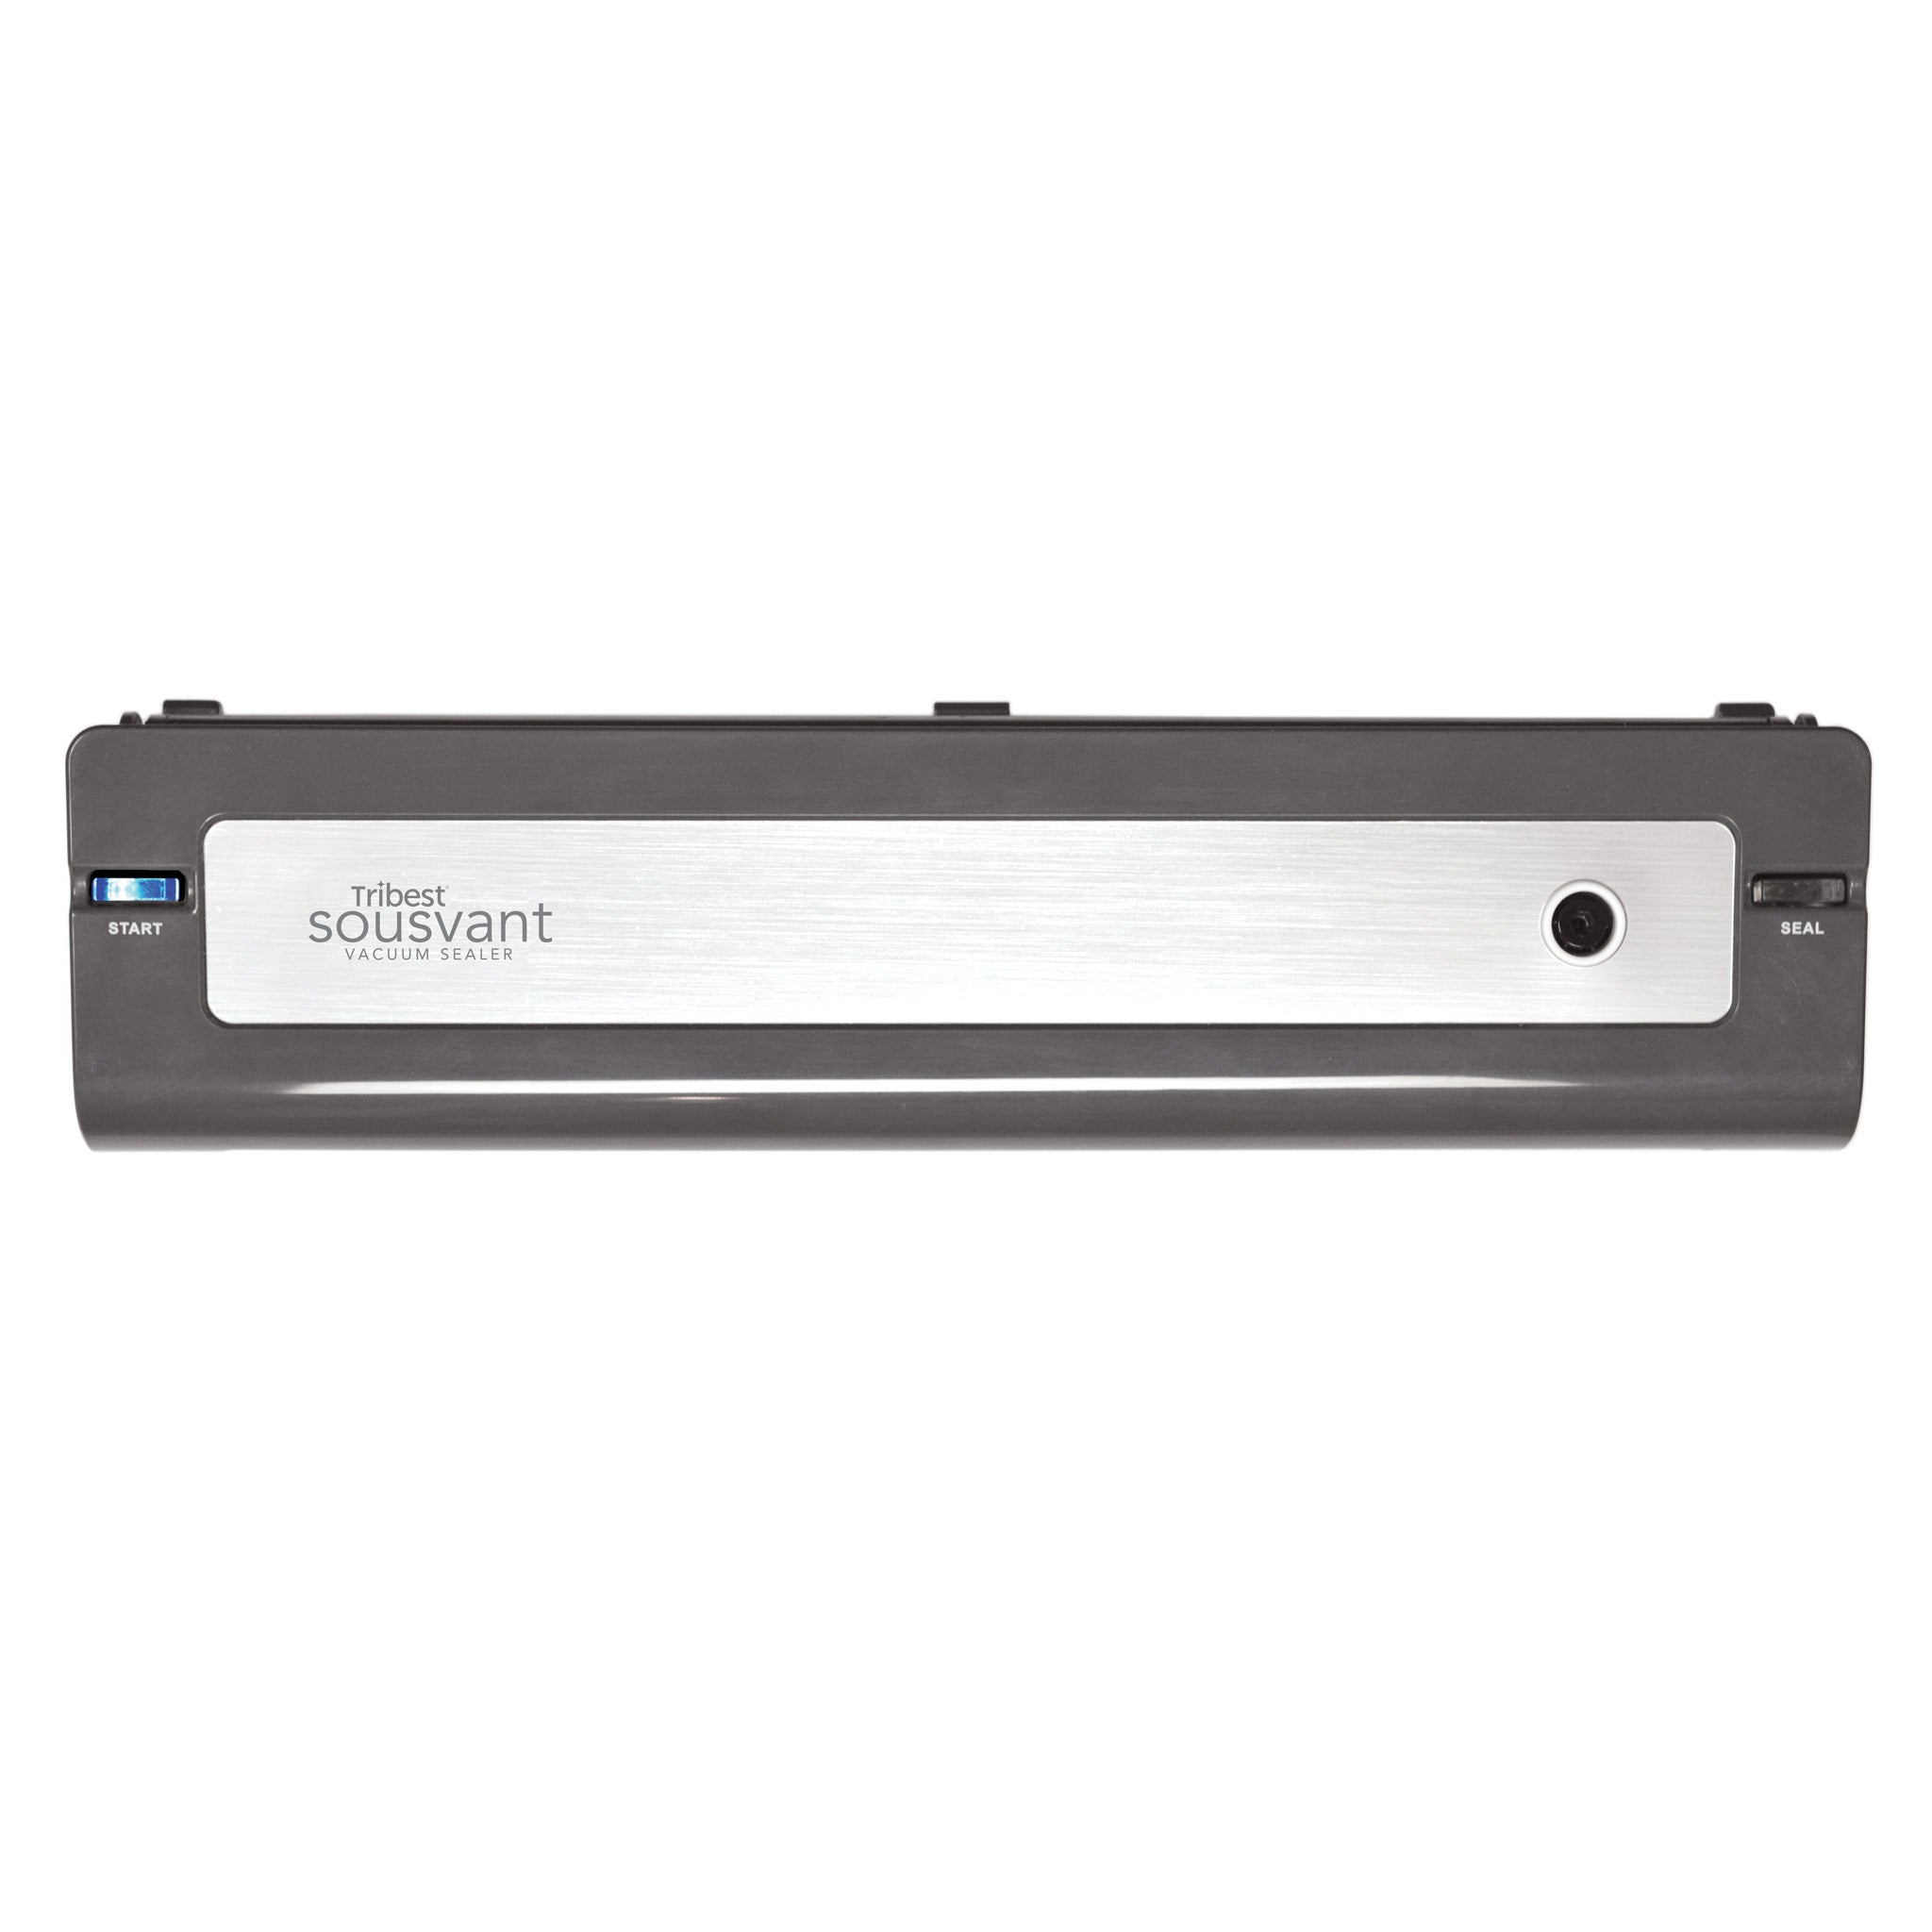 Sousvant Vacuum Sealer KL-200-A - Bird's Eye View - Tribest